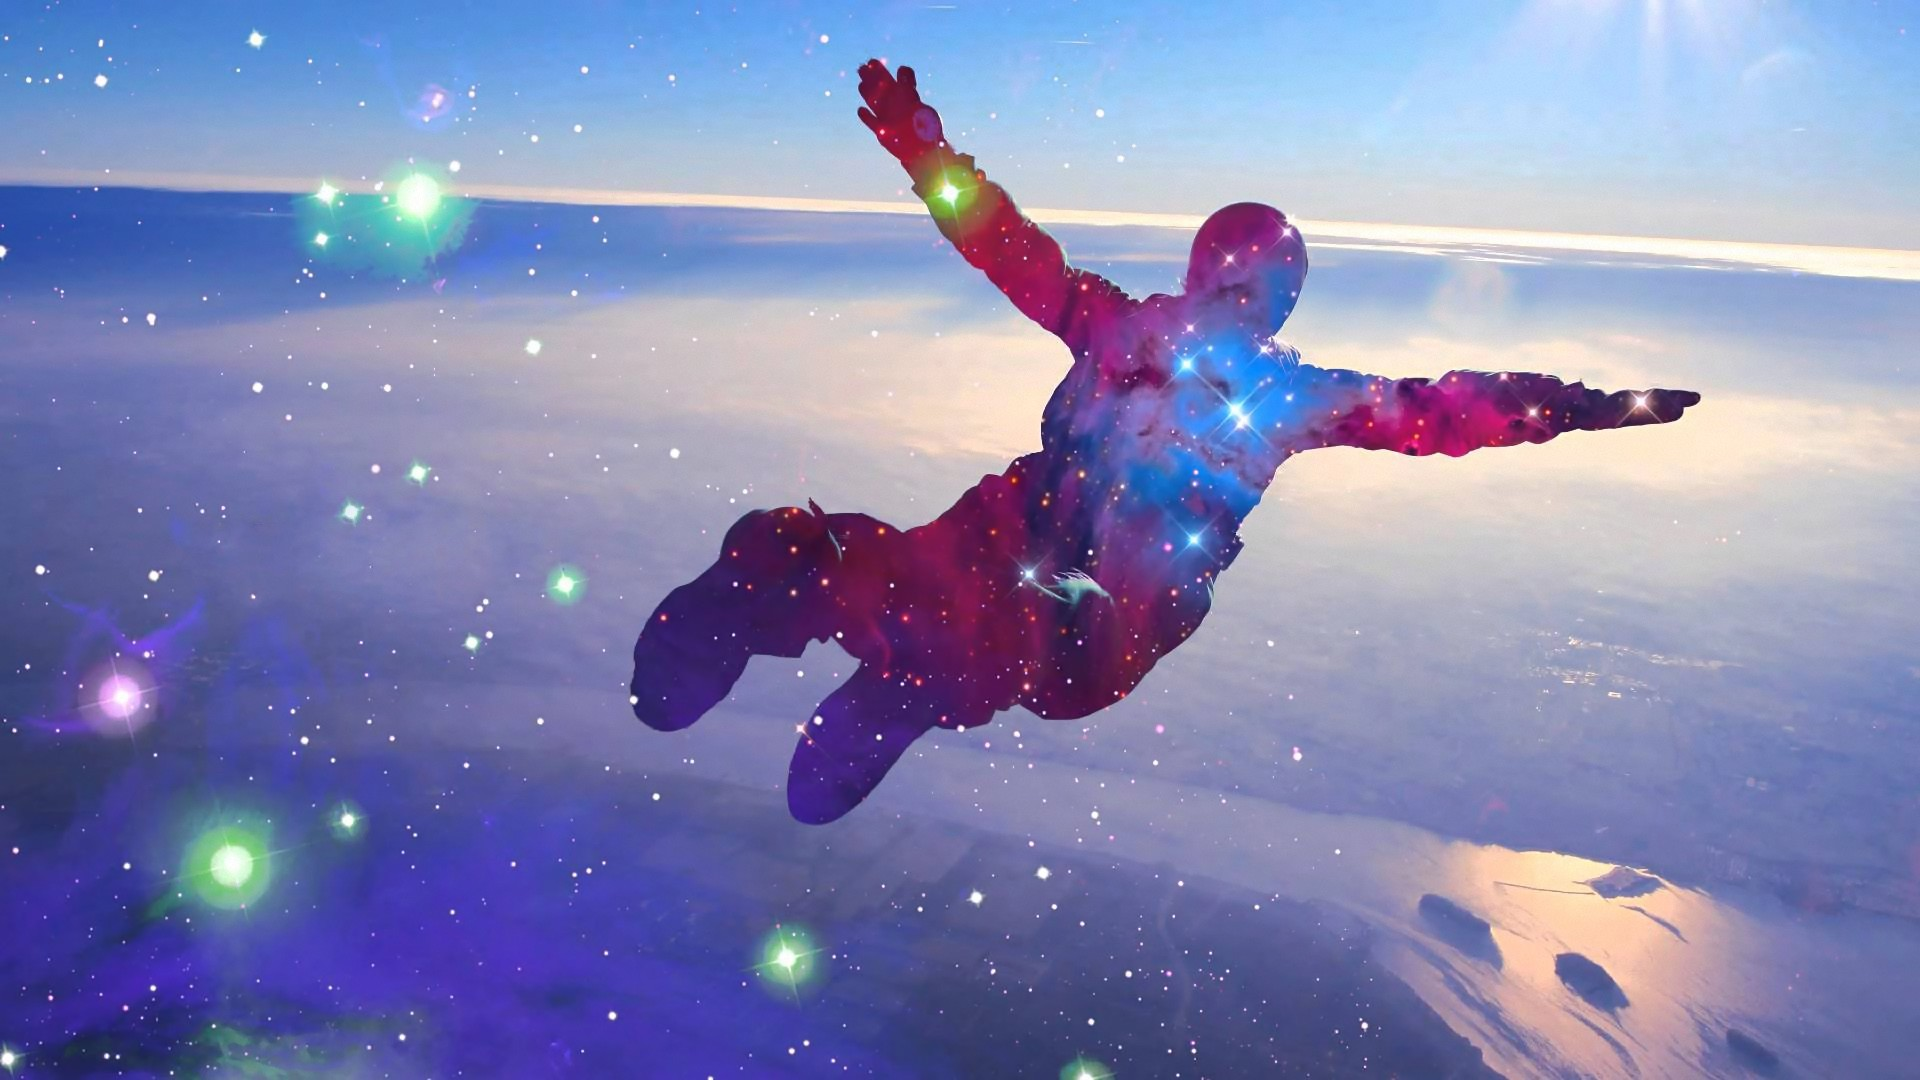 Mrsuicidesheep Wallpaper Fall 18 Awesome Hd Skydiving Wallpapers Hdwallsource Com